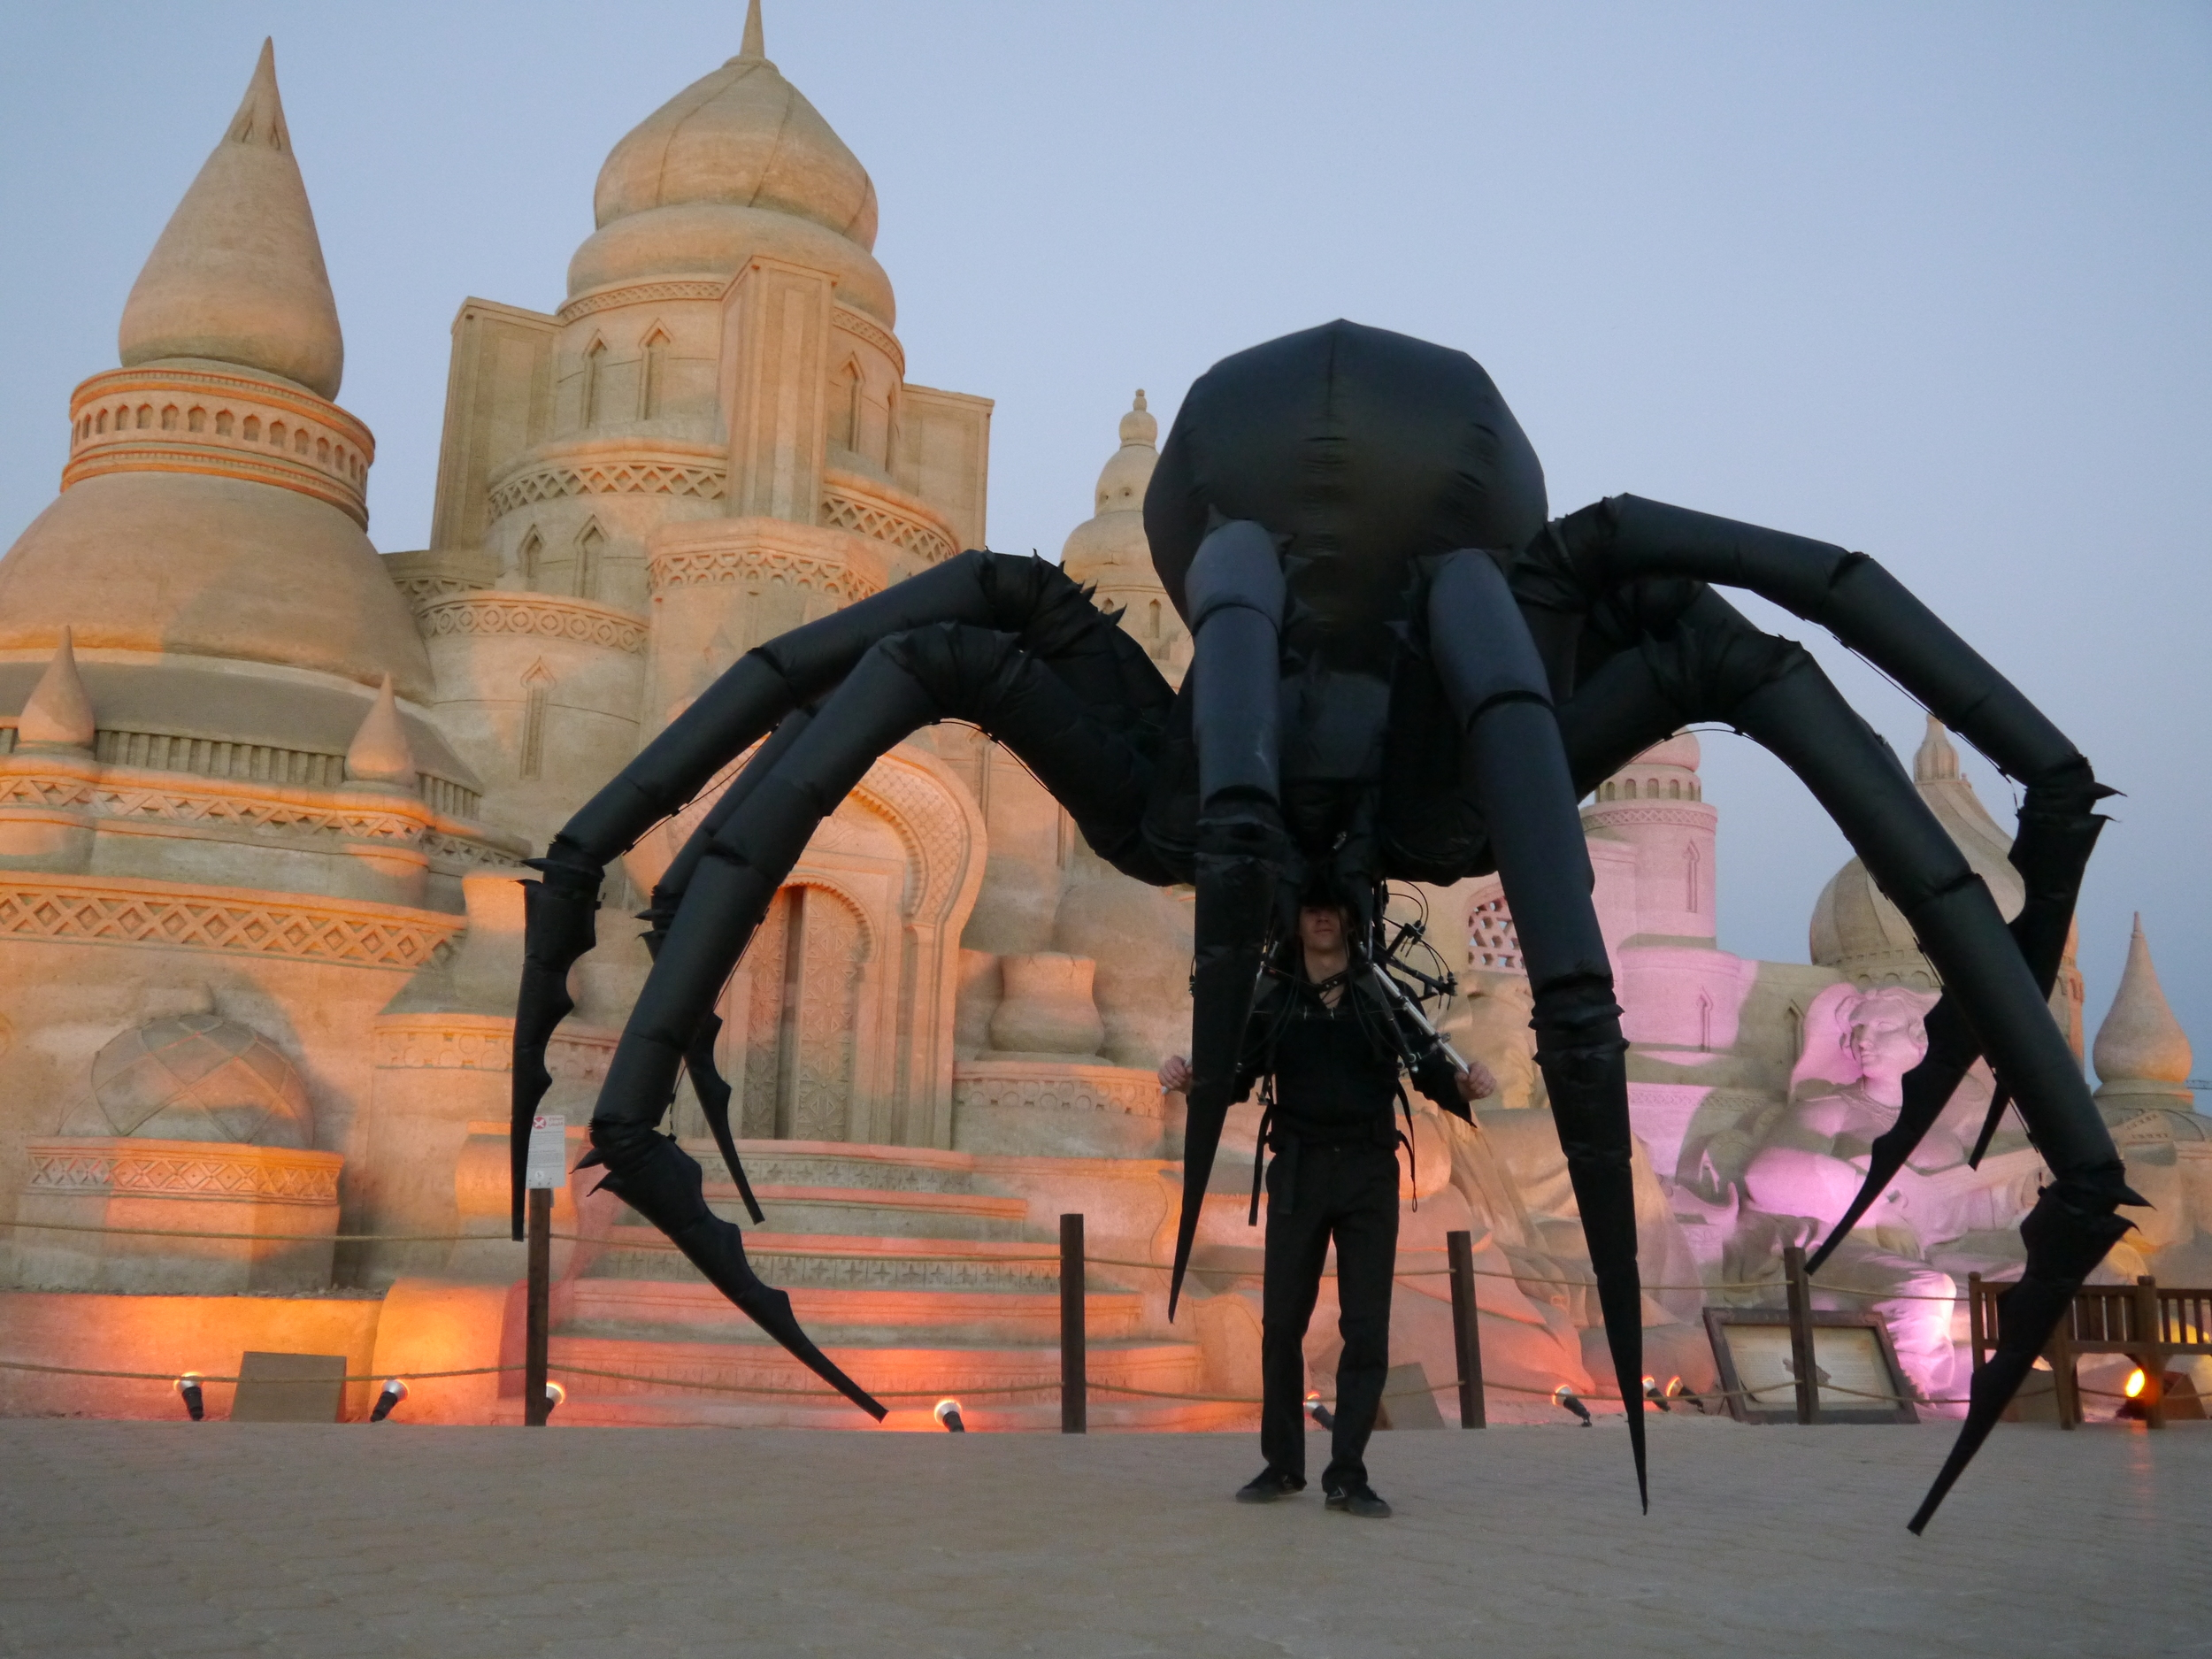 Arachnobot the giant spider puppet in Kuwait